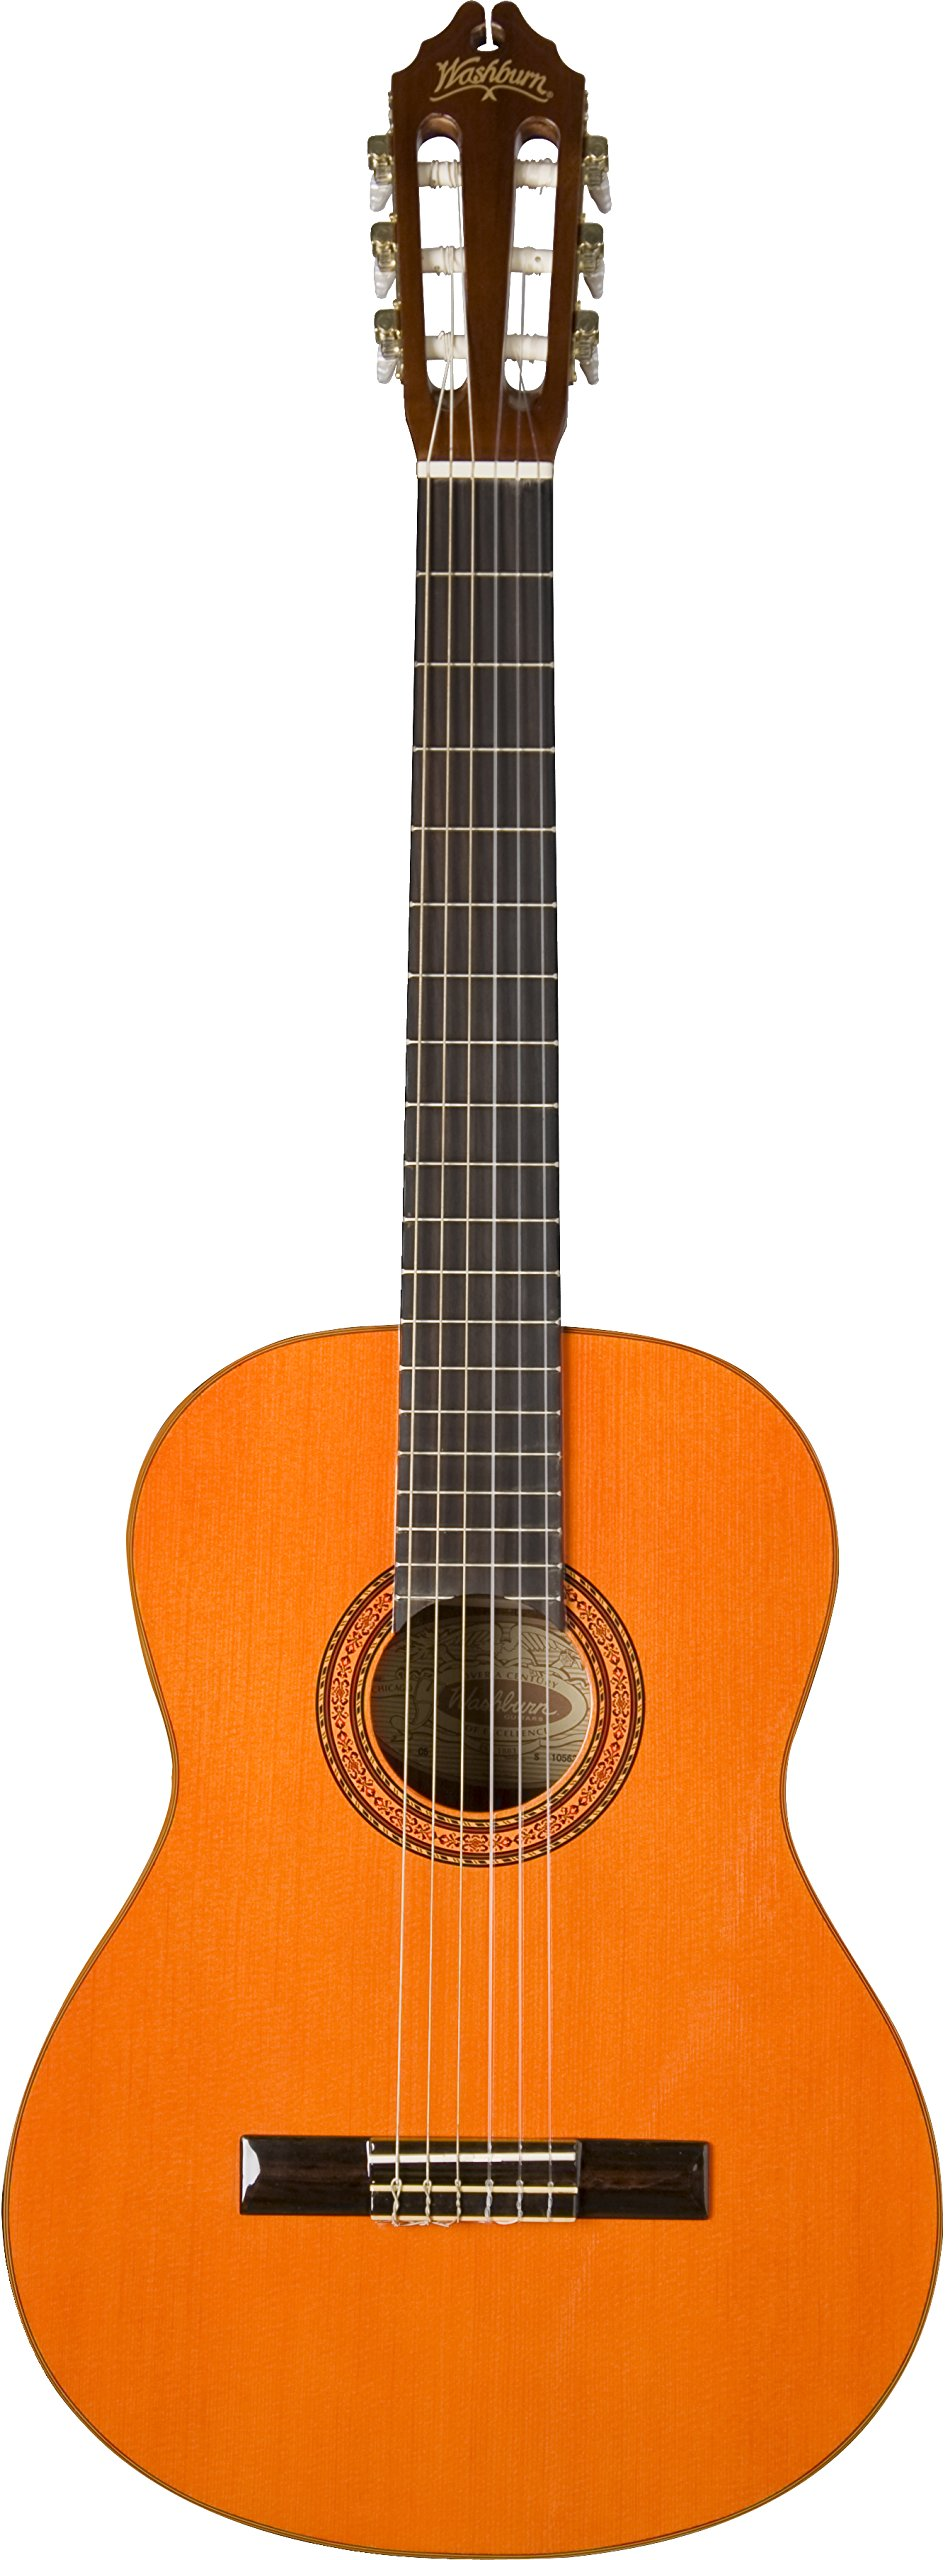 Washburn Classical C5, Acoustic Guitar by Other